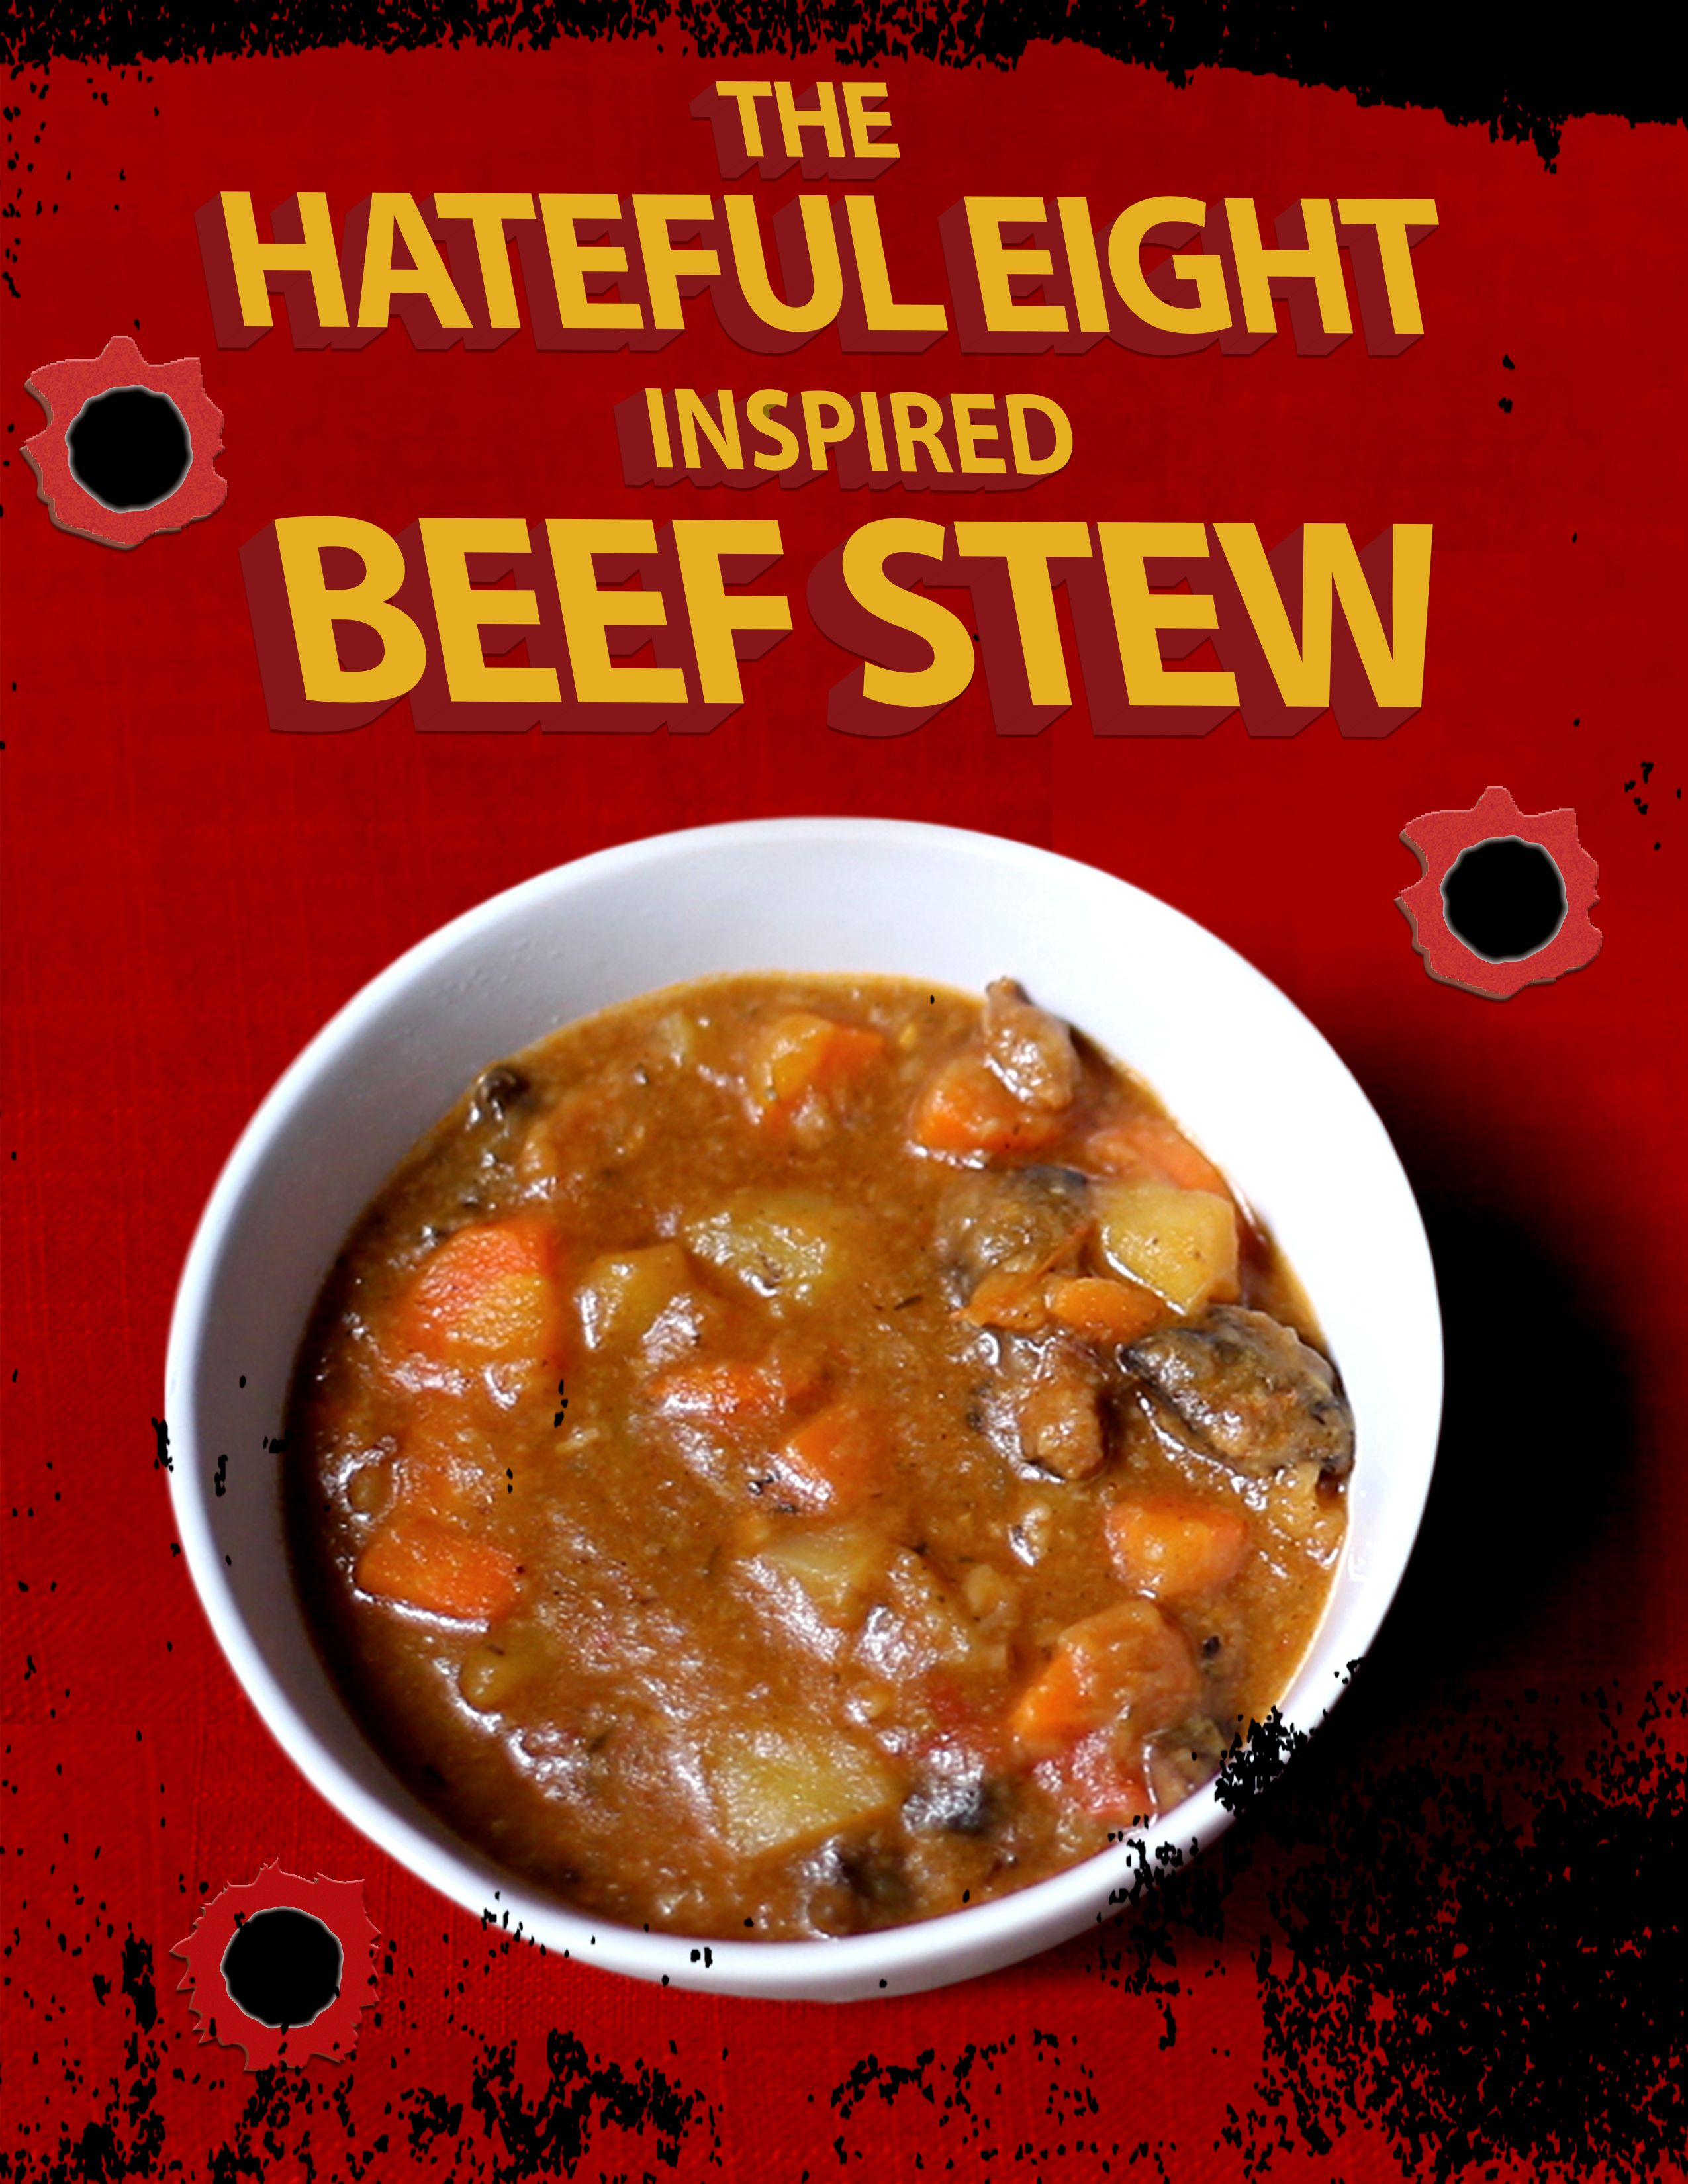 Today I M Making A Movie Inspired Dish From Hateful Eight Directed By Quentin Tarantino For Today S Recipe I Will Show Resep Makanan Rebusan Daging Rebusan